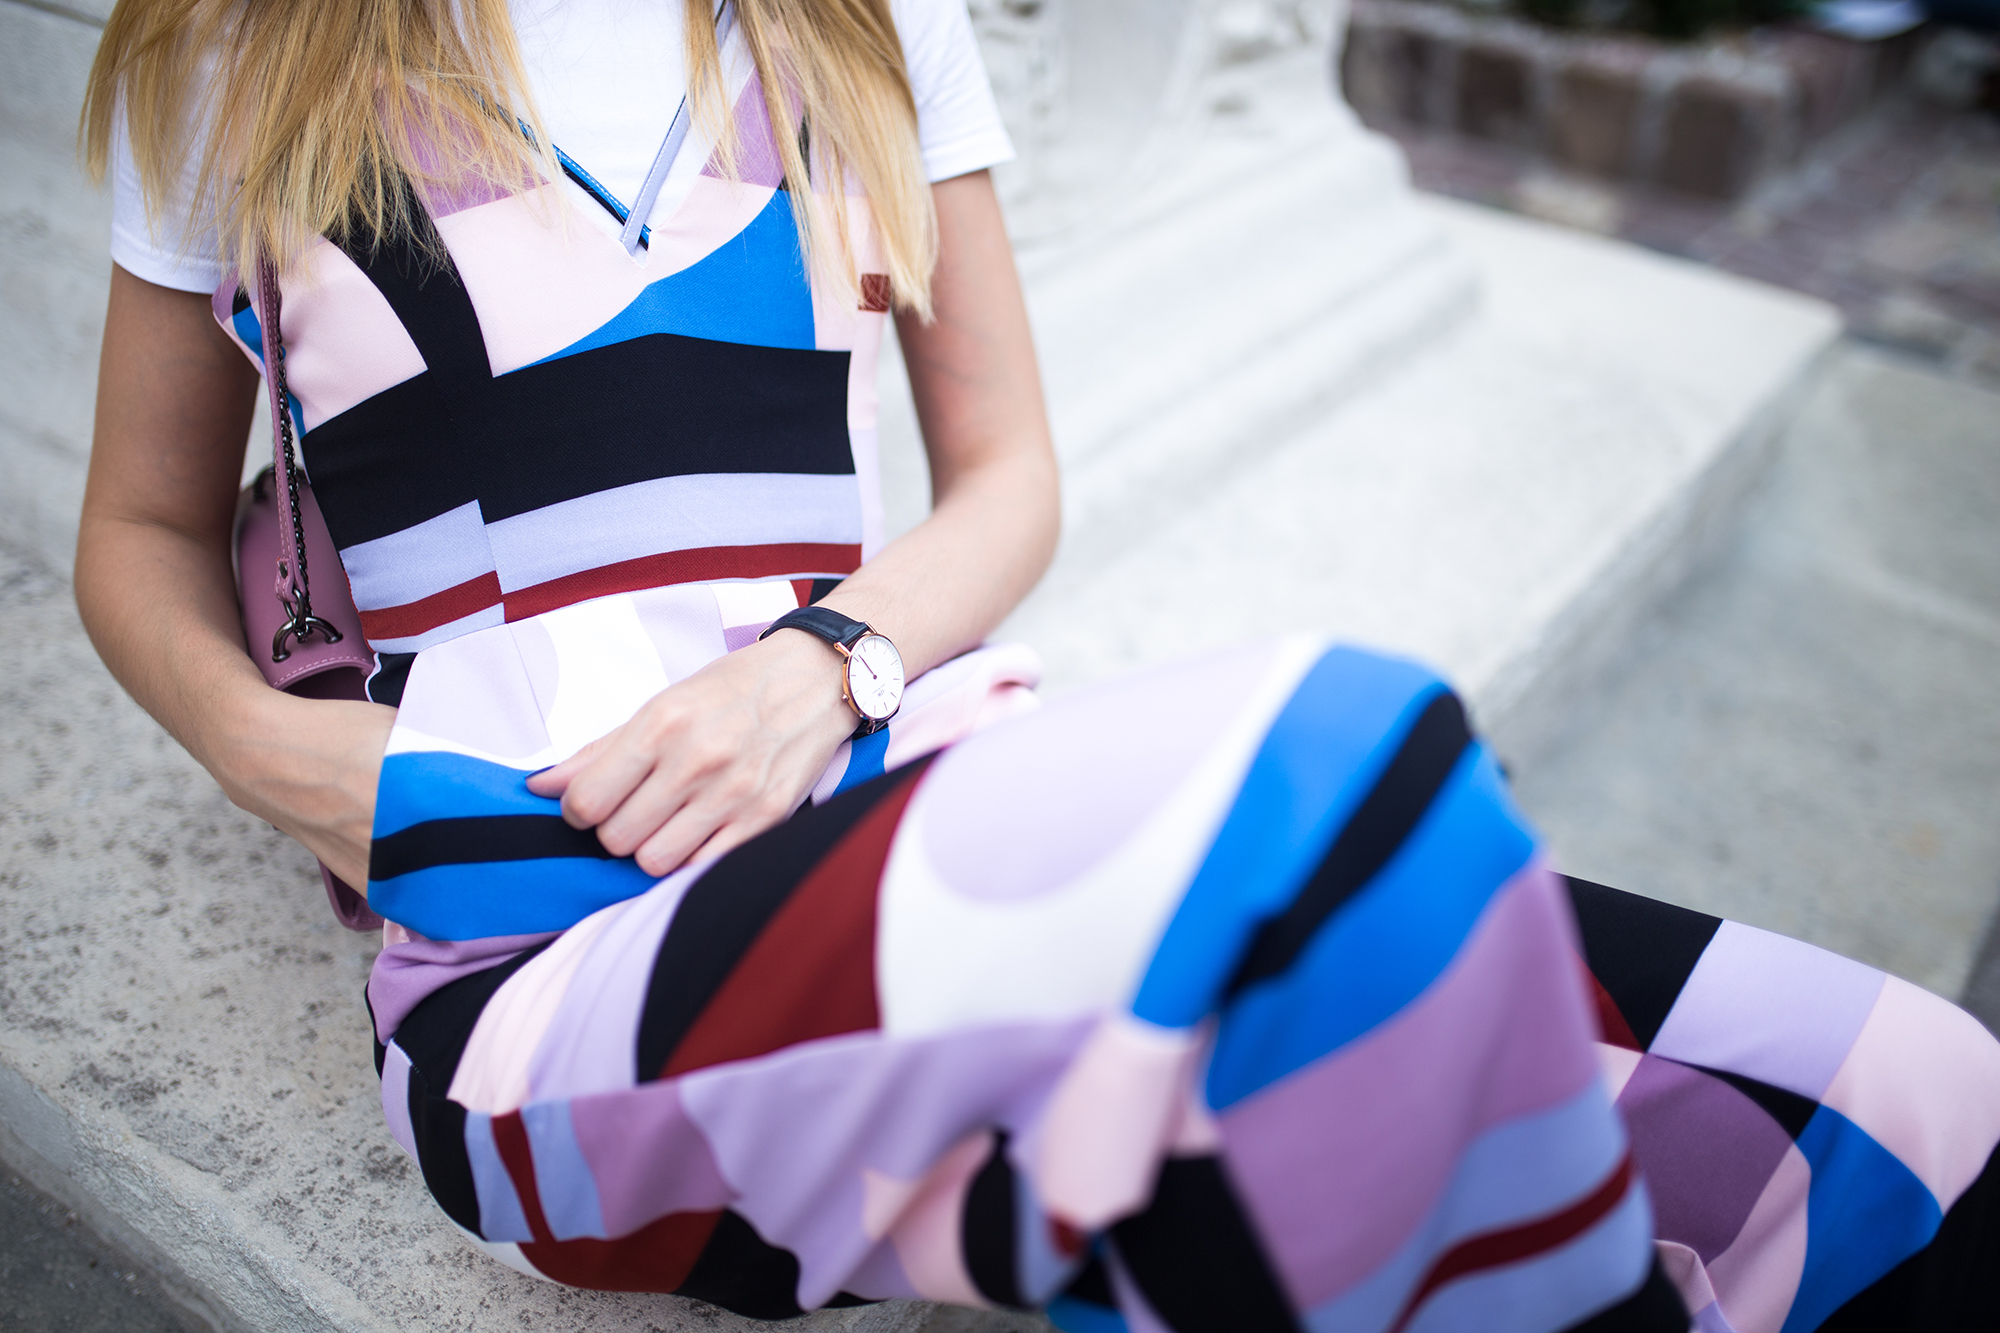 color-block-outfit-street-style